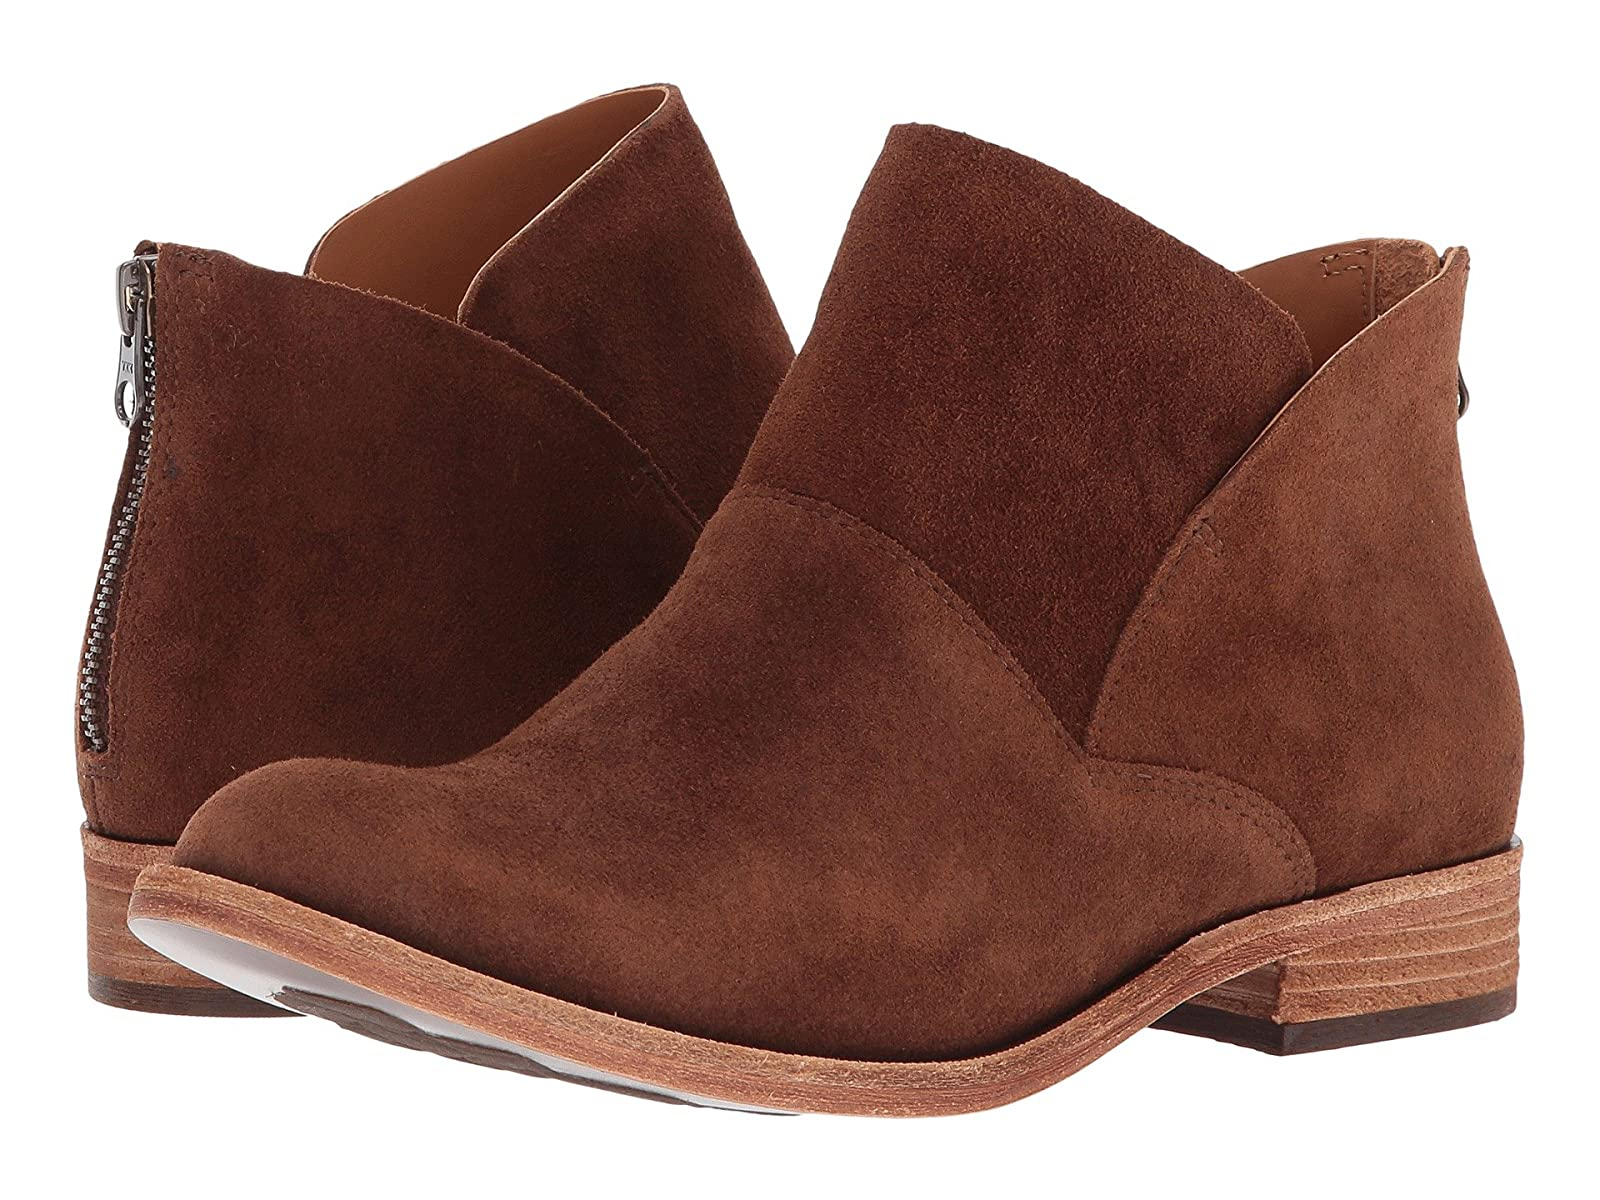 Kork-Ease RyderCheap and distinctive eye-catching shoes